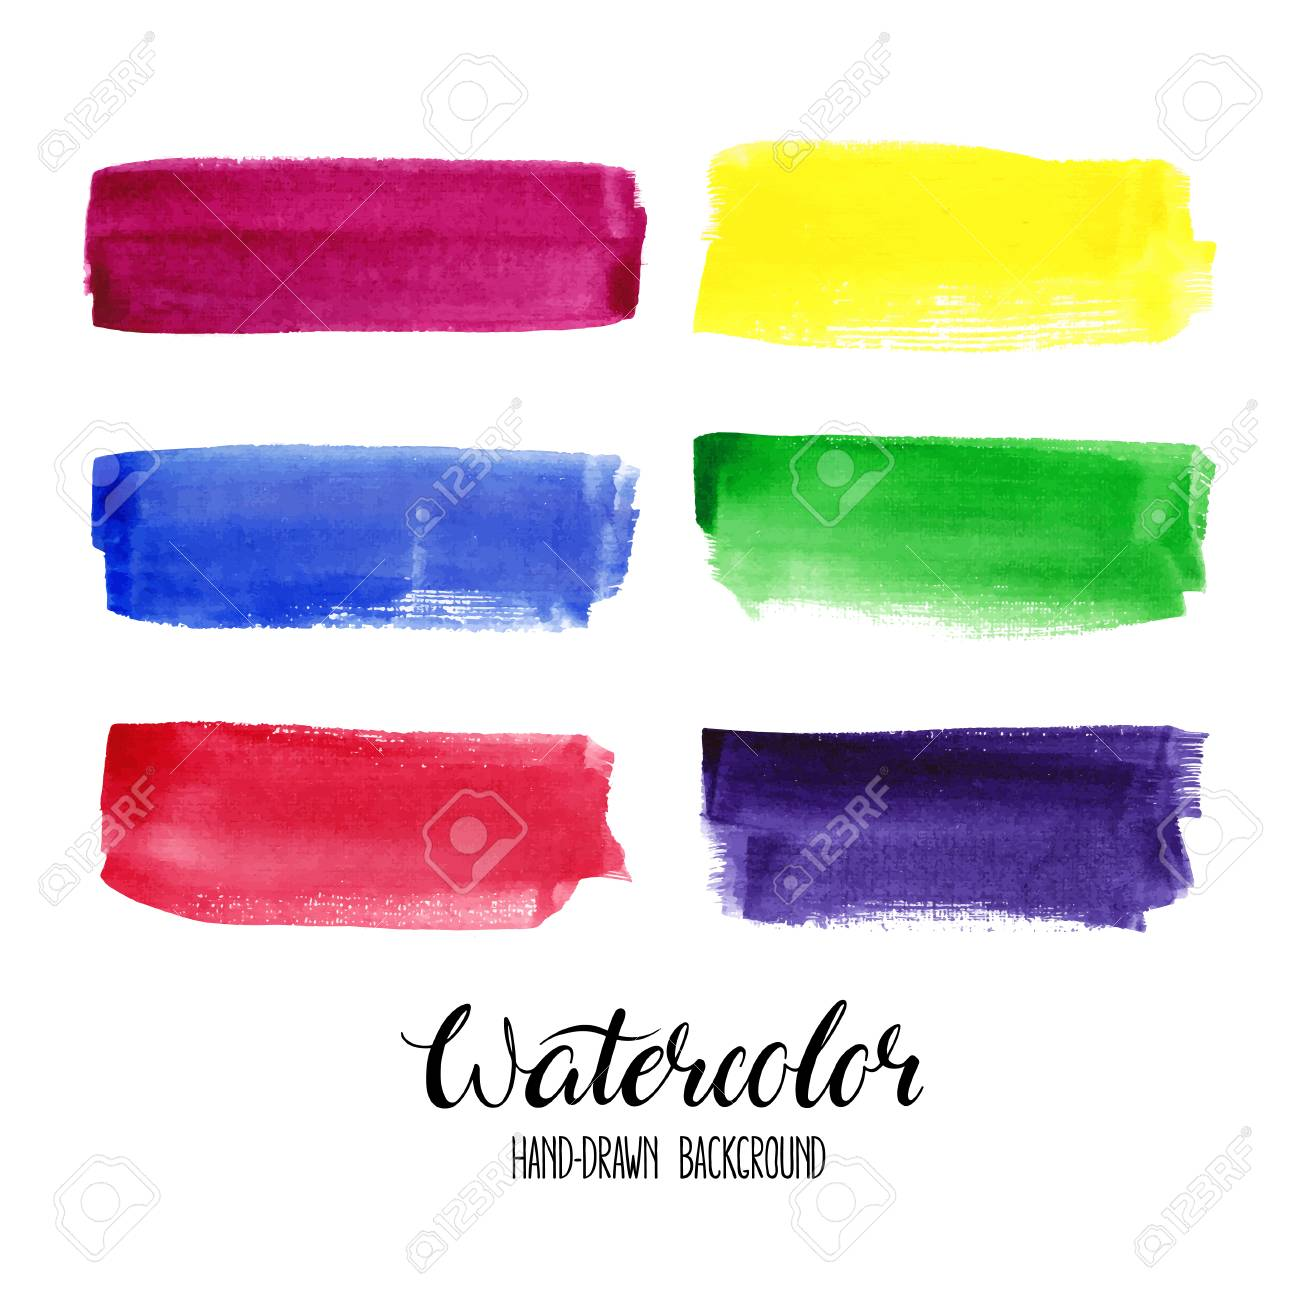 set of six colorful watercolor stroke backgrounds - 68819381